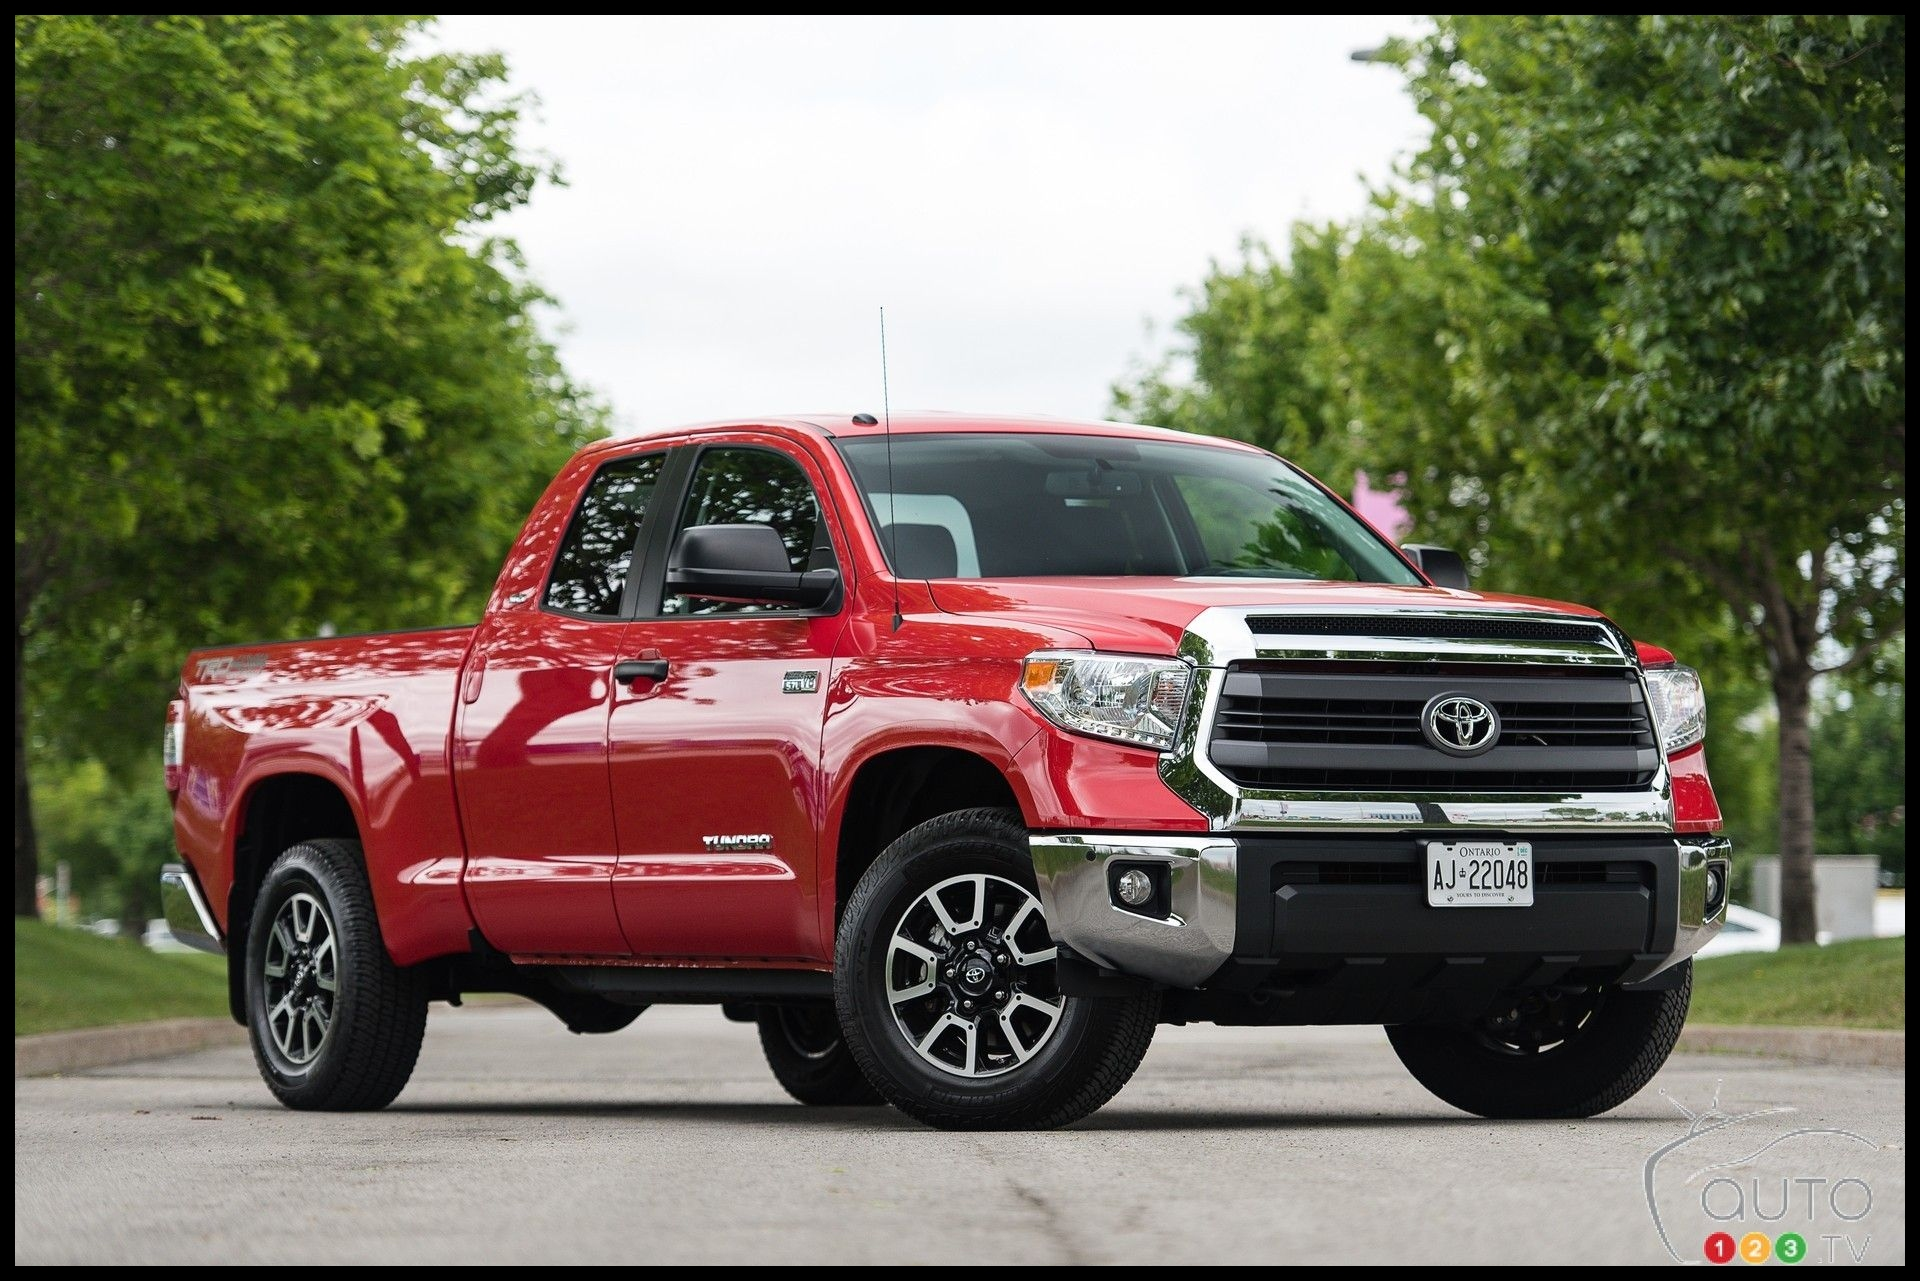 2015 Toyota Tundra Double Cab 4x4 SR 5 7L TRD Review │ Let s try something different In a parallel world where the Ford F 150 GMC Sierra